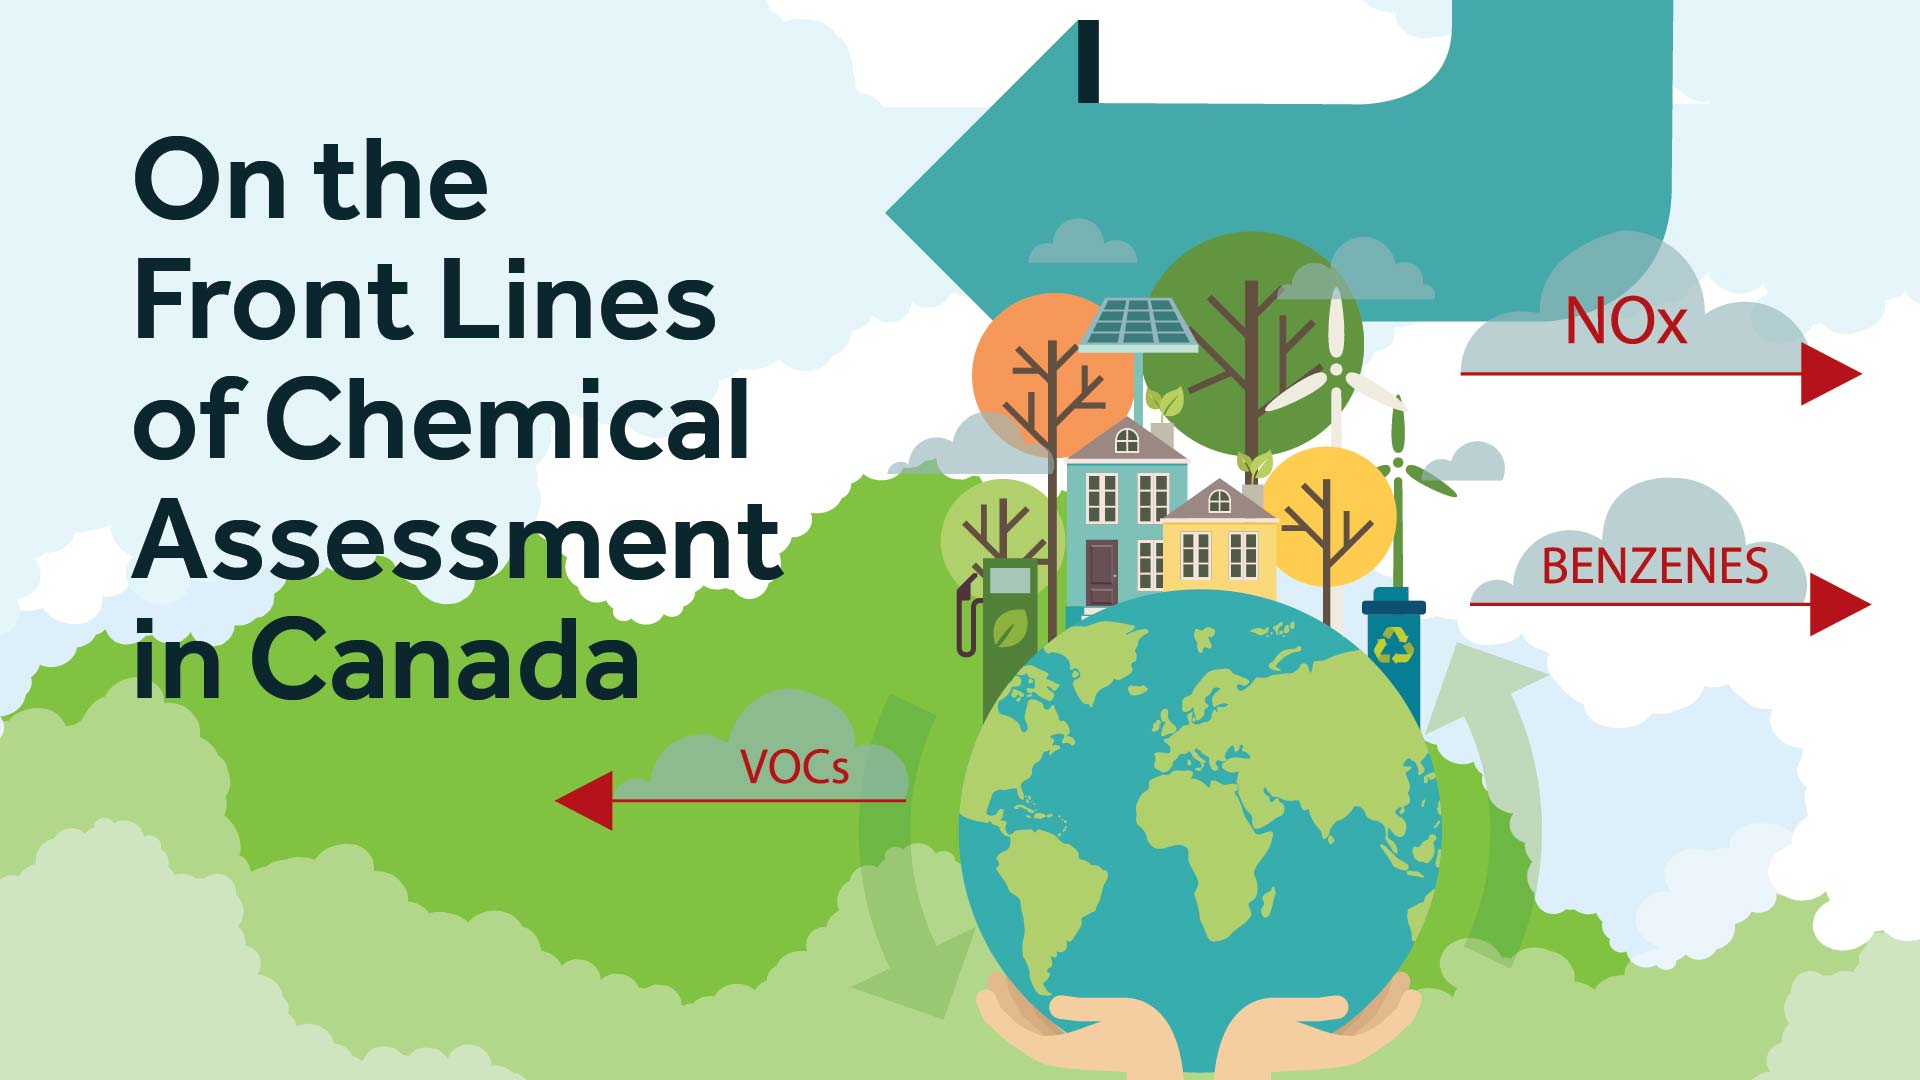 On the Front Lines of Chemical Assessment in Canada